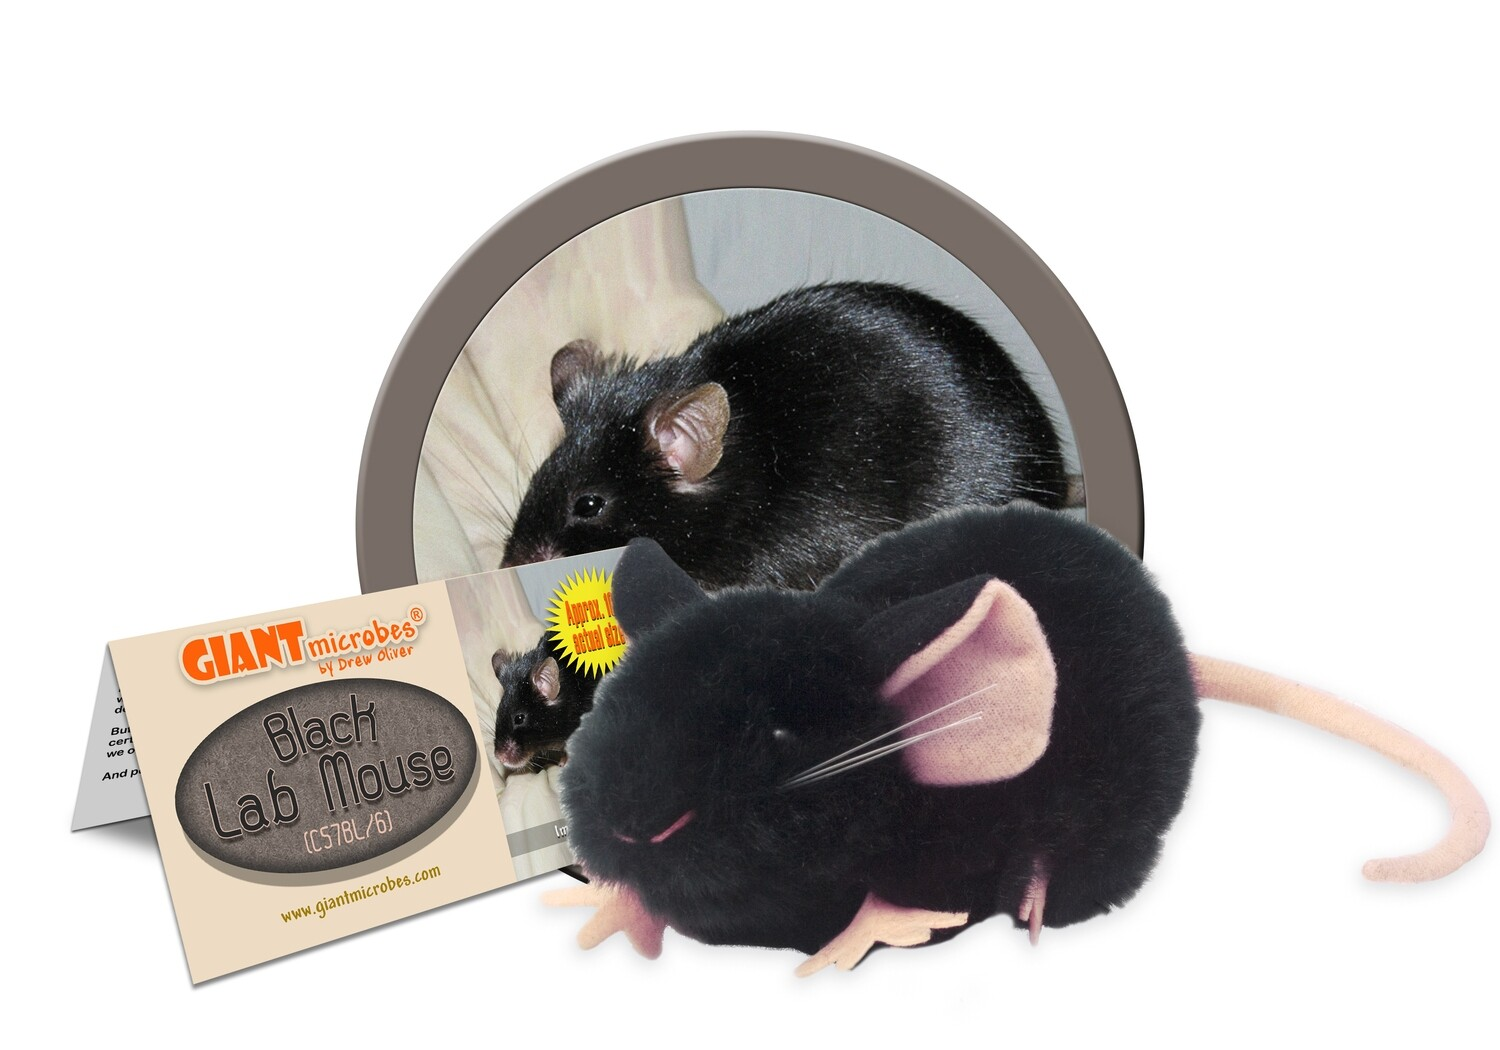 Giant M Toy - Black Lab Mouse